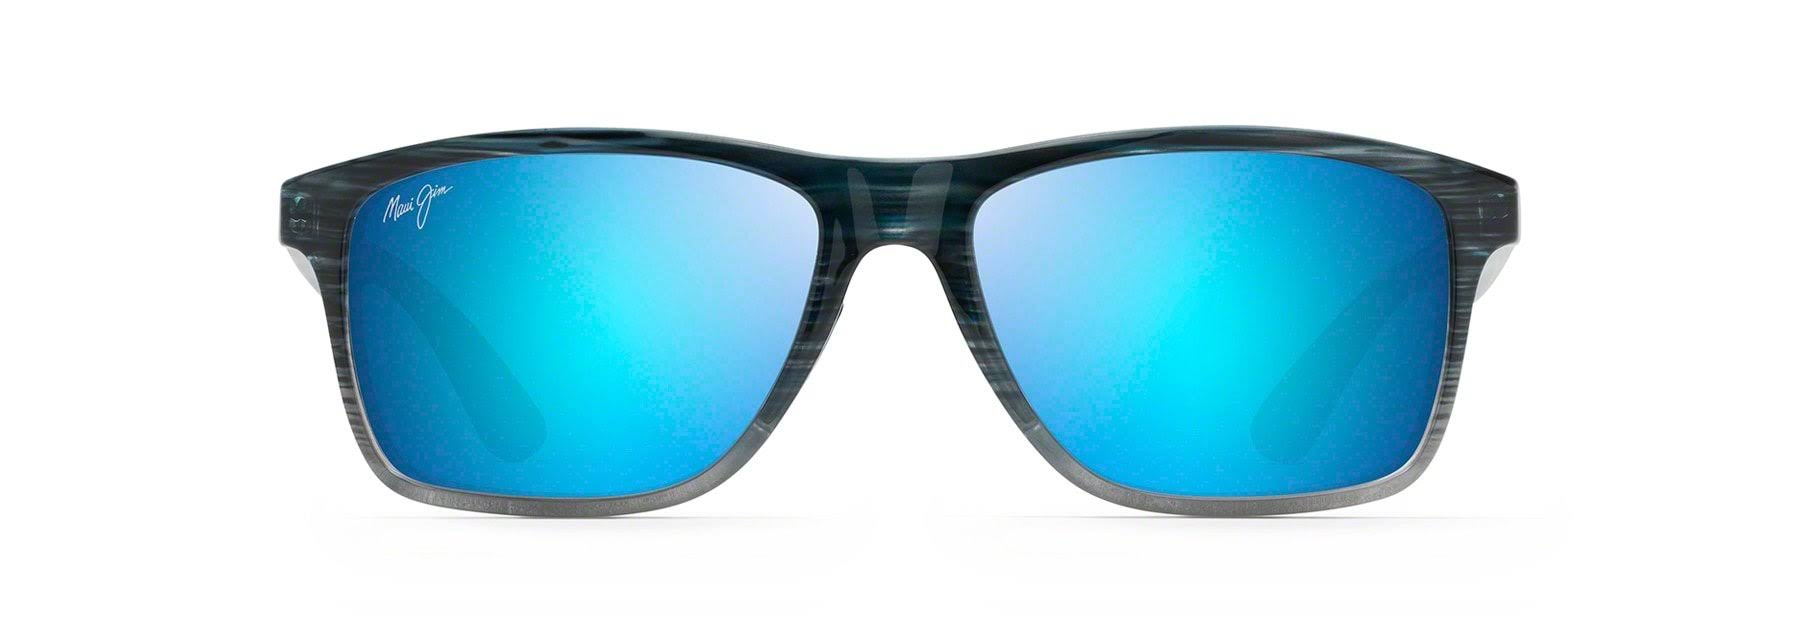 Maui Jim Onshore - Blue - Sunglasses